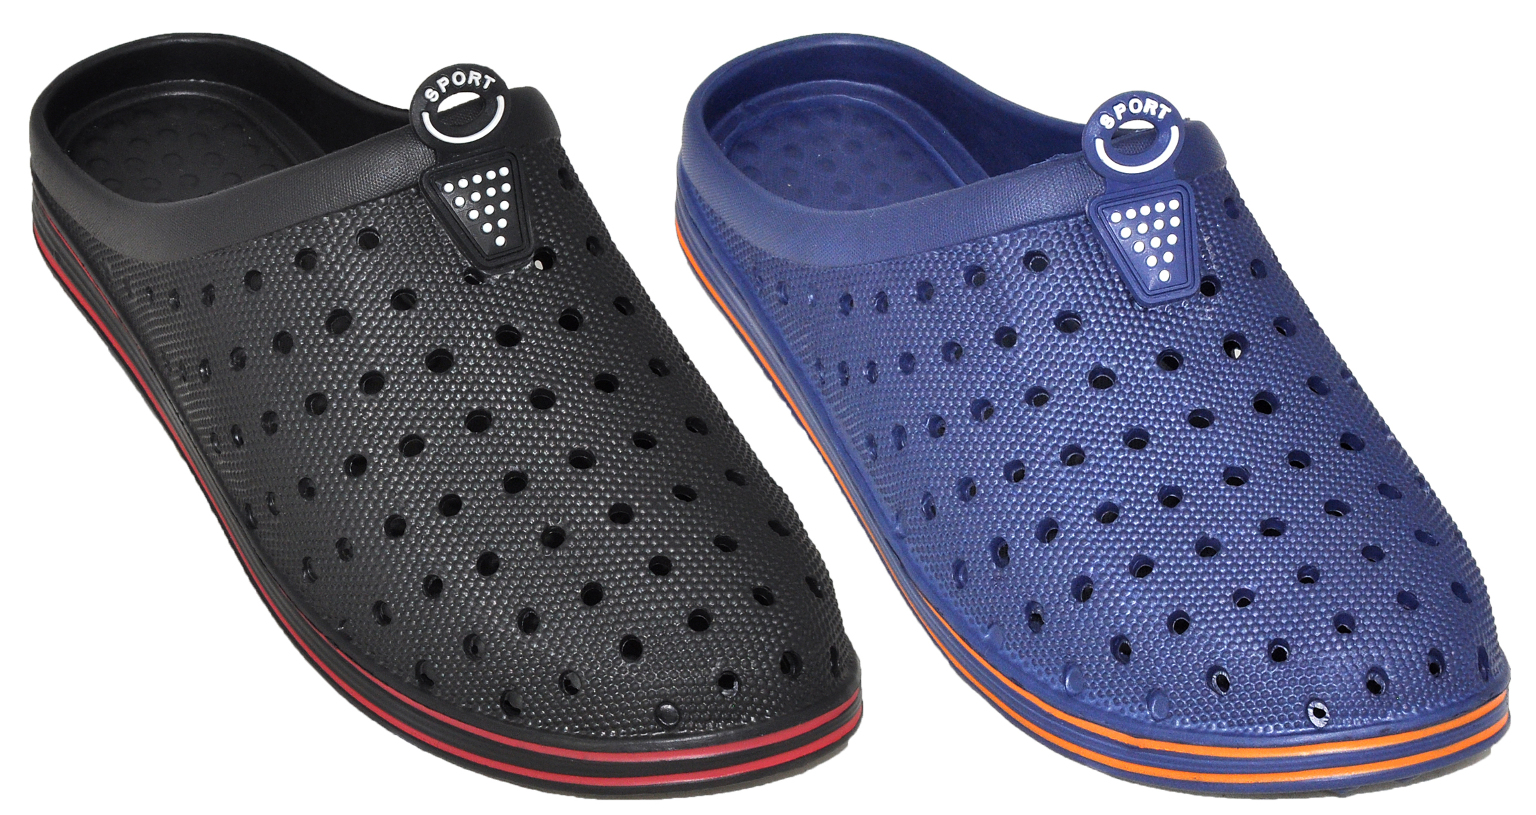 Men's Slip On CLOGS - Black & Navy [2339780]